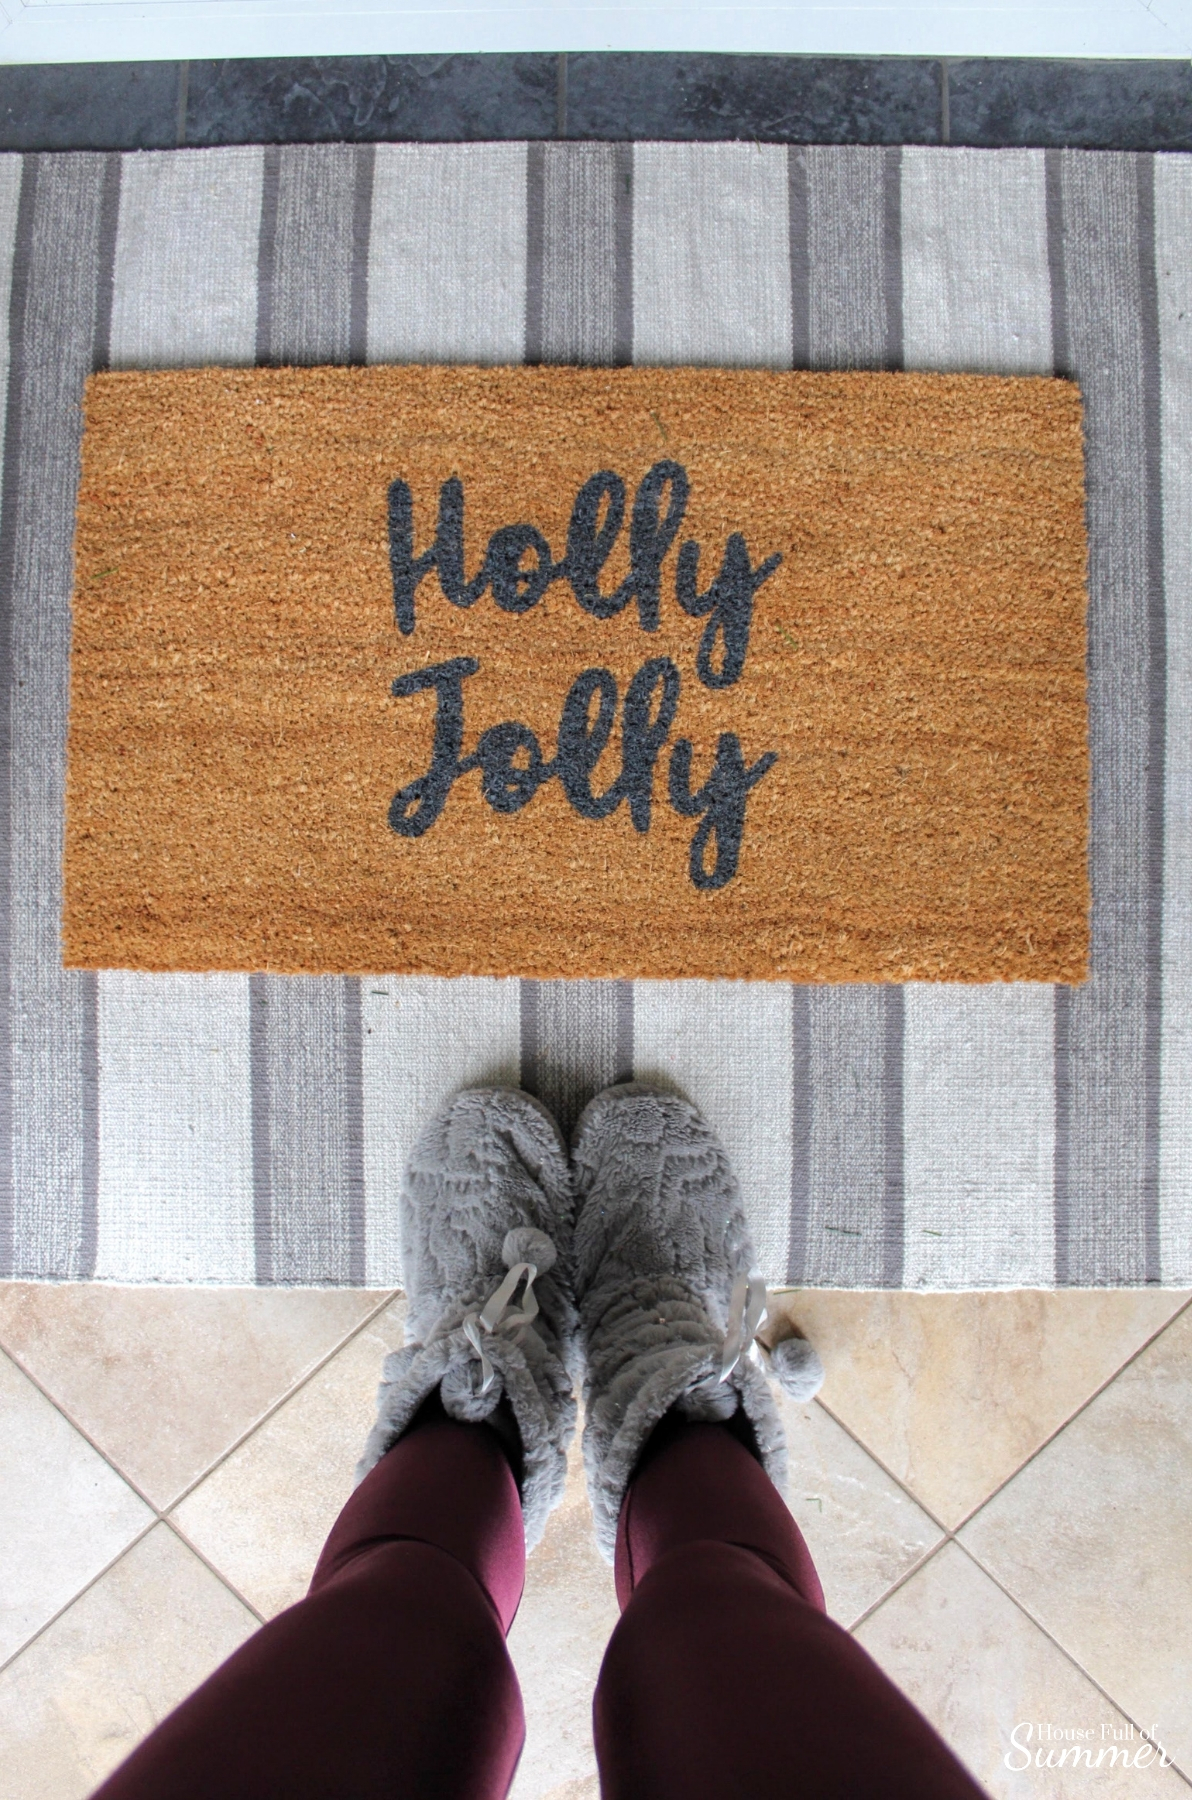 How to Decorate Your Front Porch for Christmas in a Warm Climate | Outdoor Christmas decor if you have warm weather! Florida style, desert Christmas decor, Christmas in the South, outdoor garland, greenery, balsamhill #housefullofsummer #balsamhill House Full of Summer door mat holly jolly